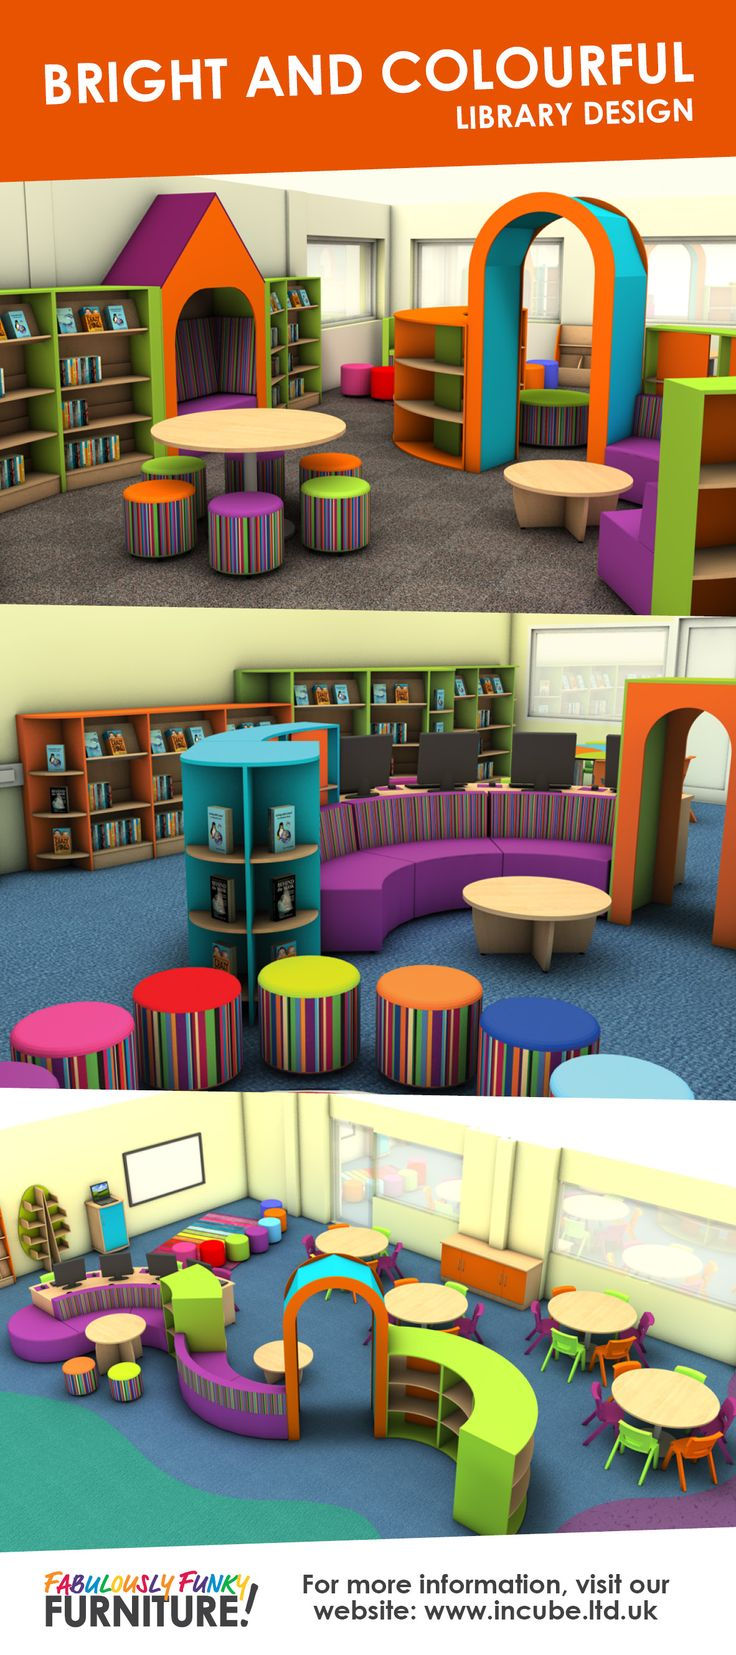 Incube Ltd can help you find your perfect Bright and Colourful library design for your school or public library.